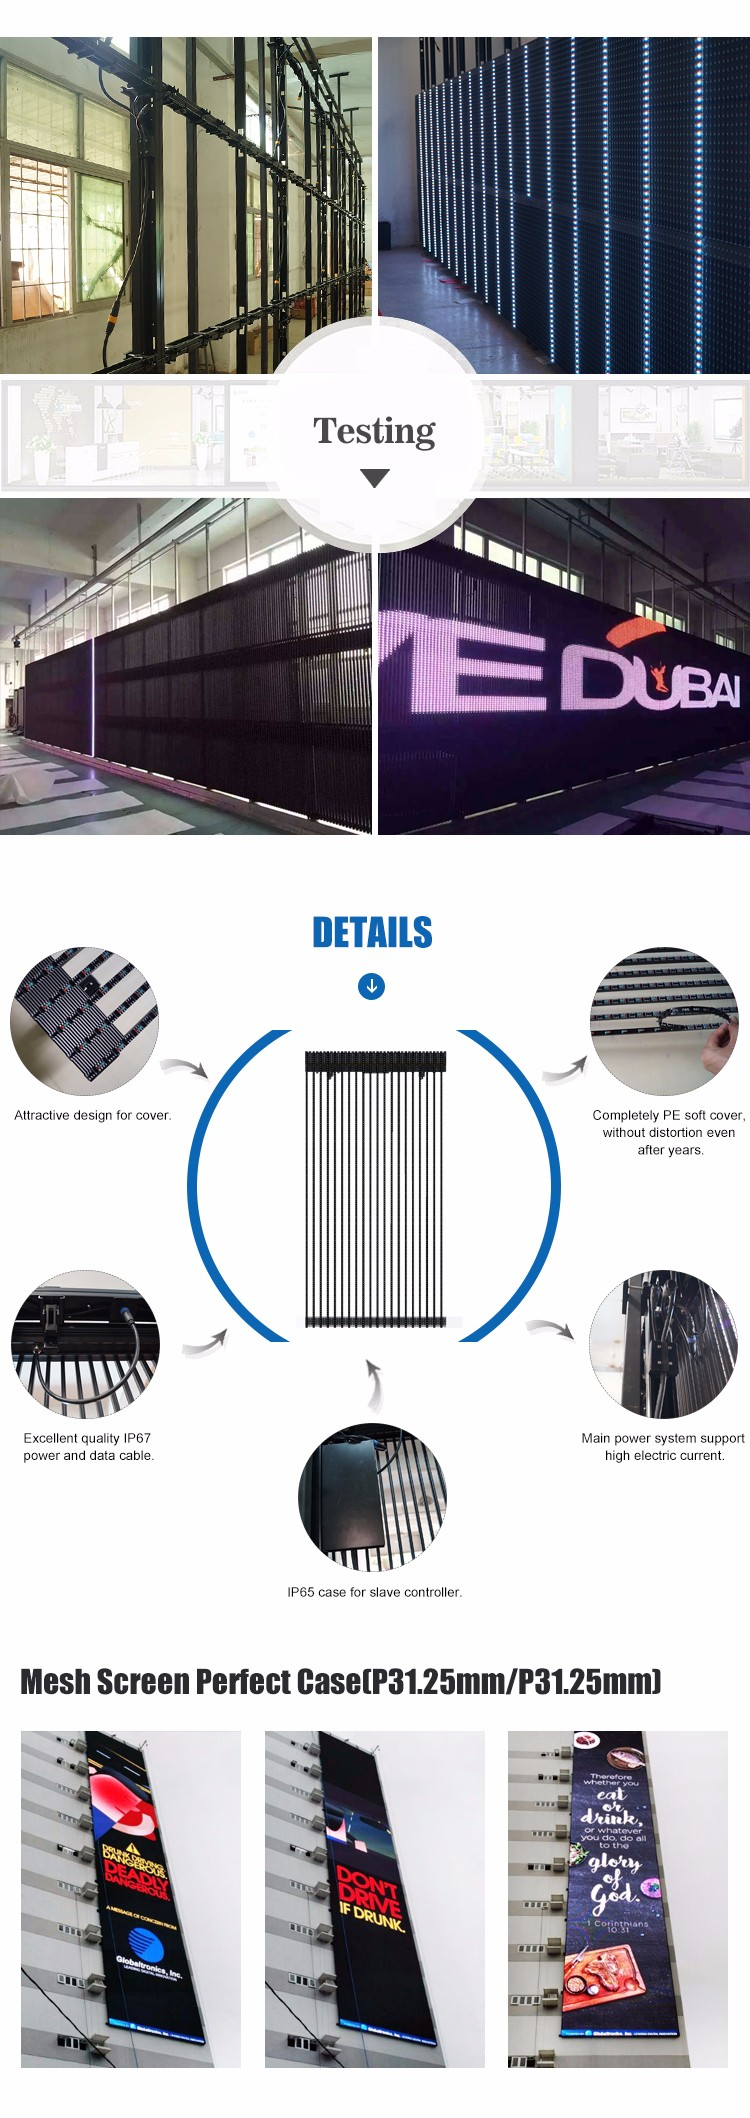 Led curtain concert - Led Screen Hd Video Led Curtain Tranperent Screen For Stage Backdrops Concert Show